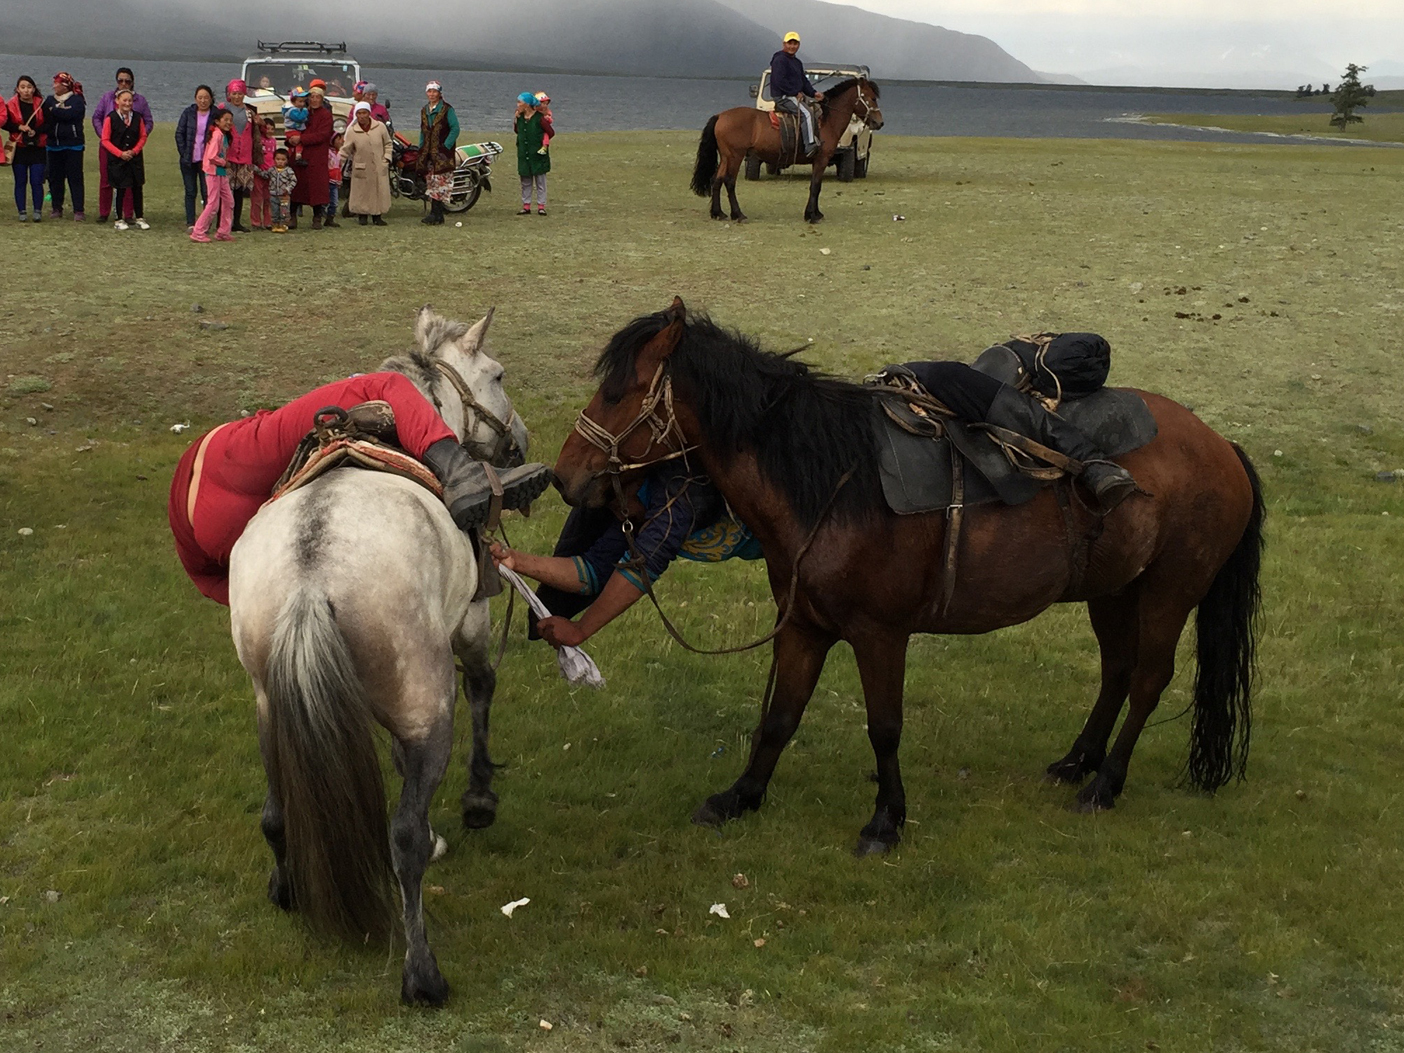 Mongolian tug of war with a rice sack while on horseback